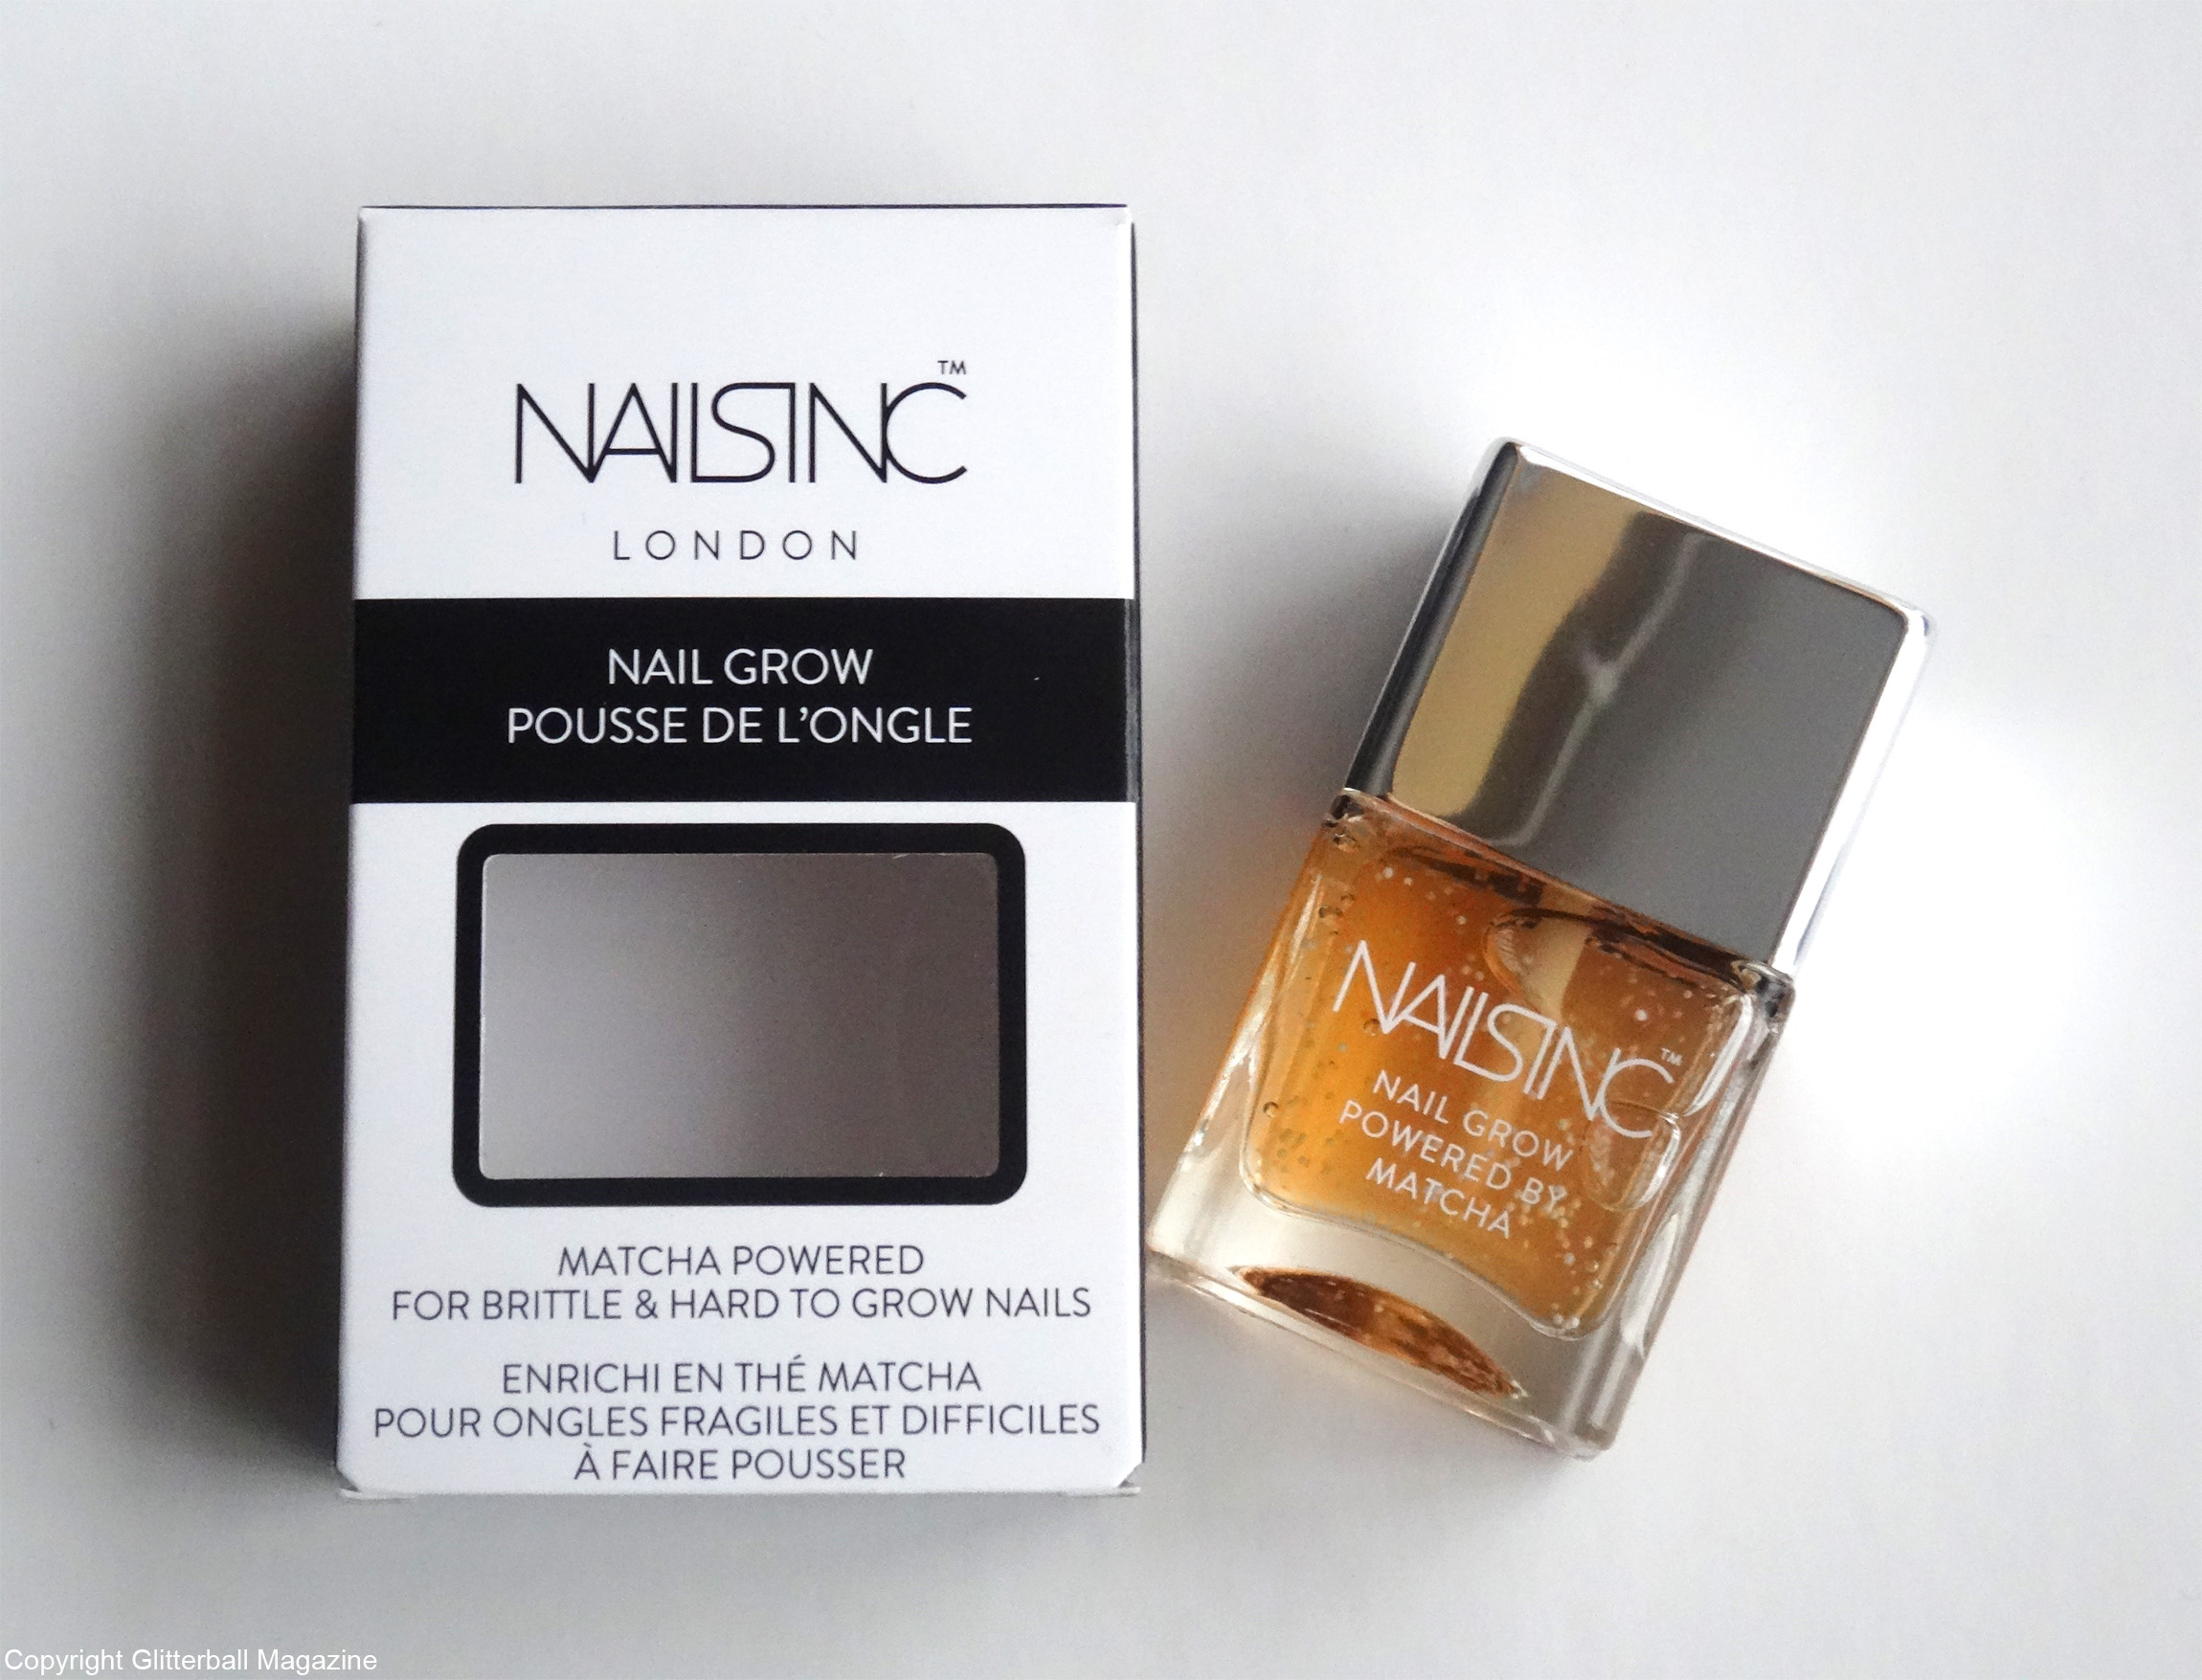 NAILS INC. BLOGGERS\' EVENT AT FENWICK NEWCASTLE - Glitterball Magazine